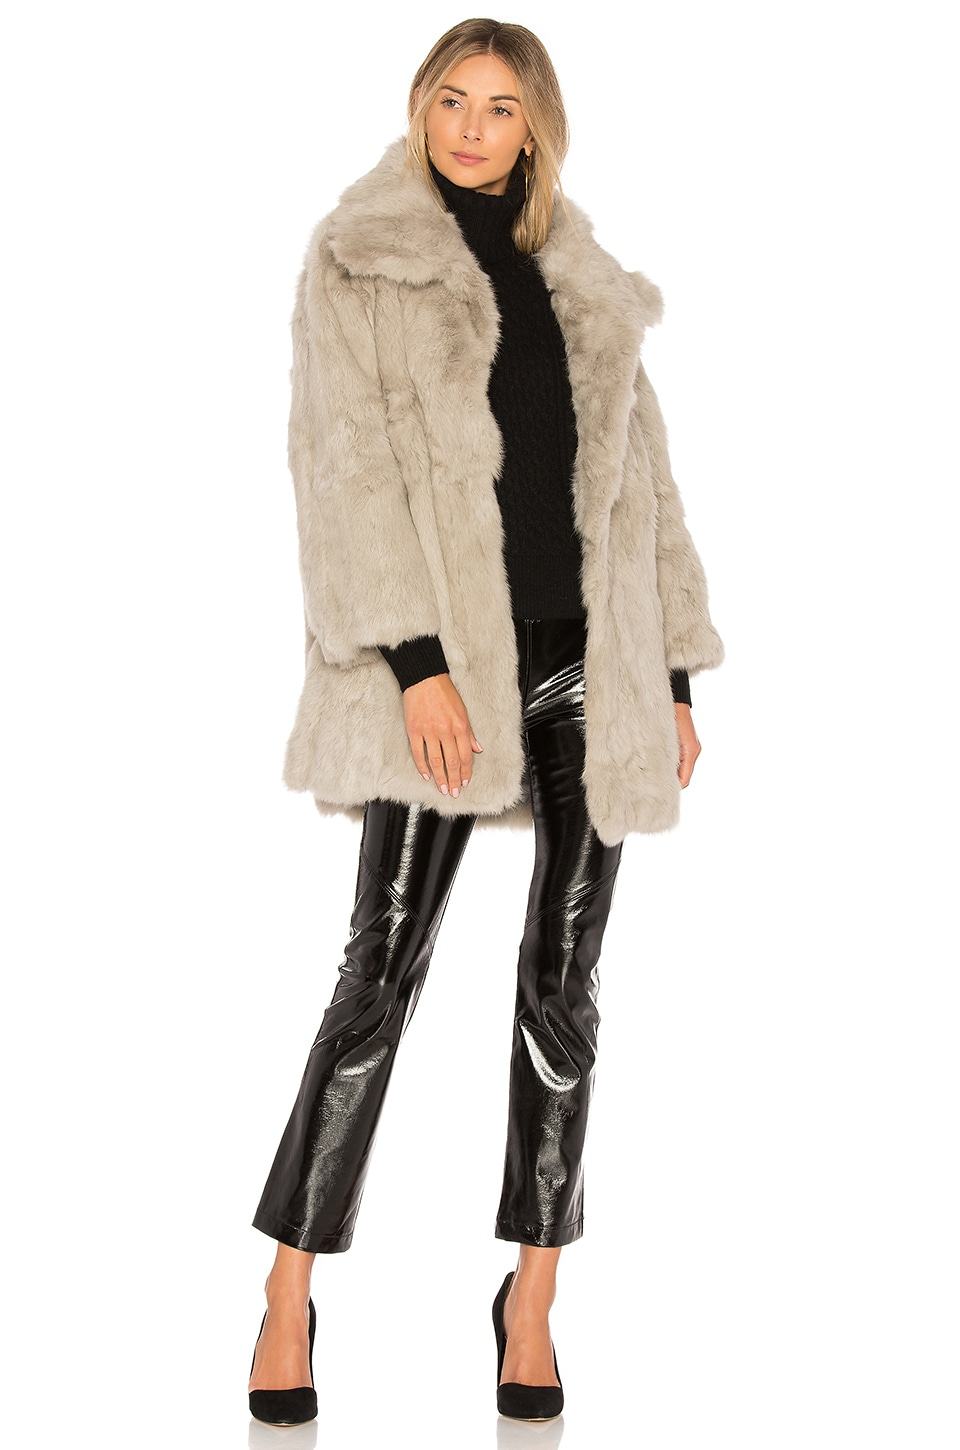 Adrienne Landau Textured Rabbit Fur Coat in Light Grey